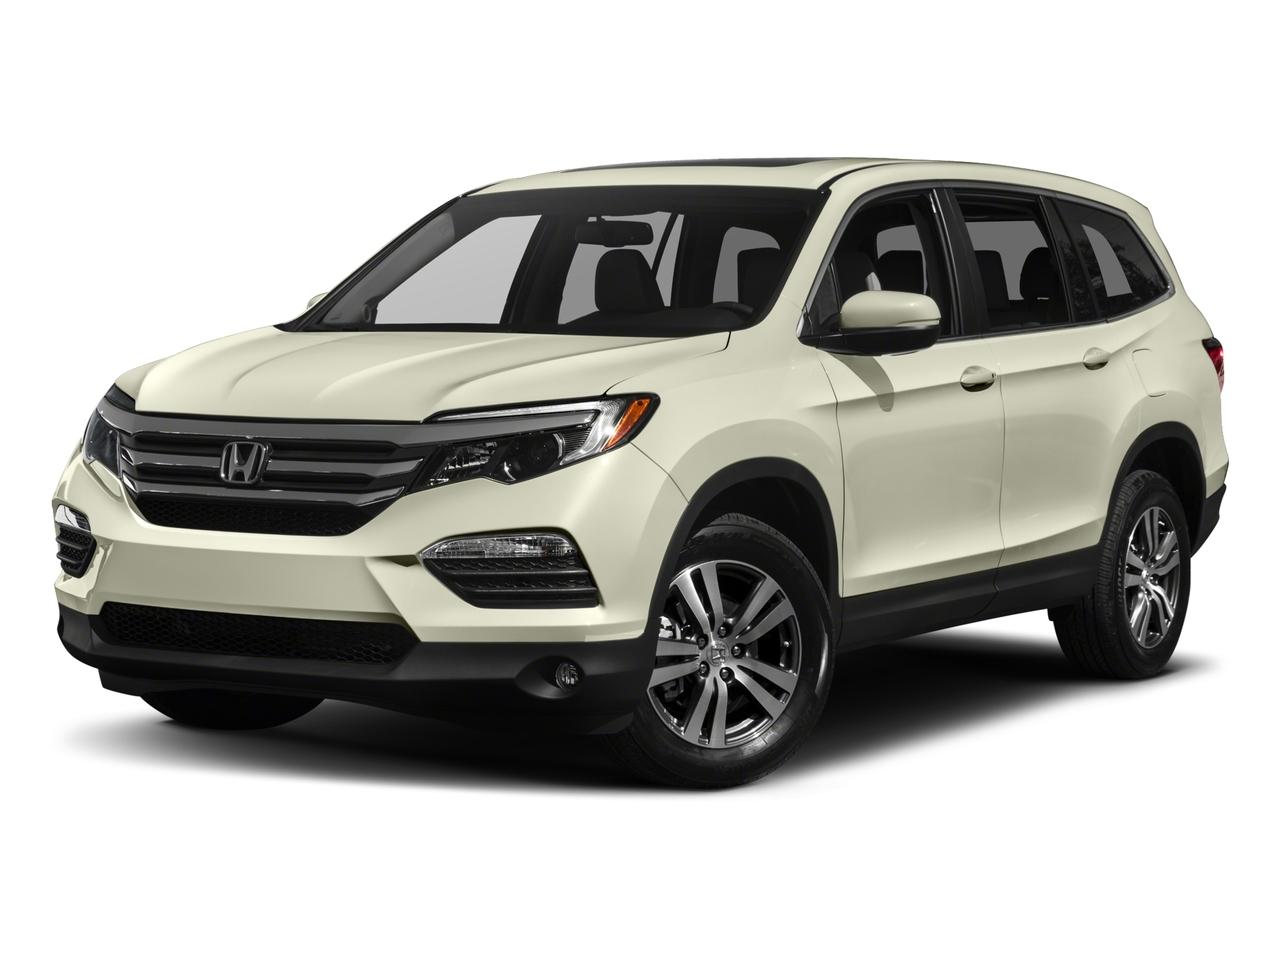 2017 Honda Pilot Vehicle Photo in Bowie, MD 20716